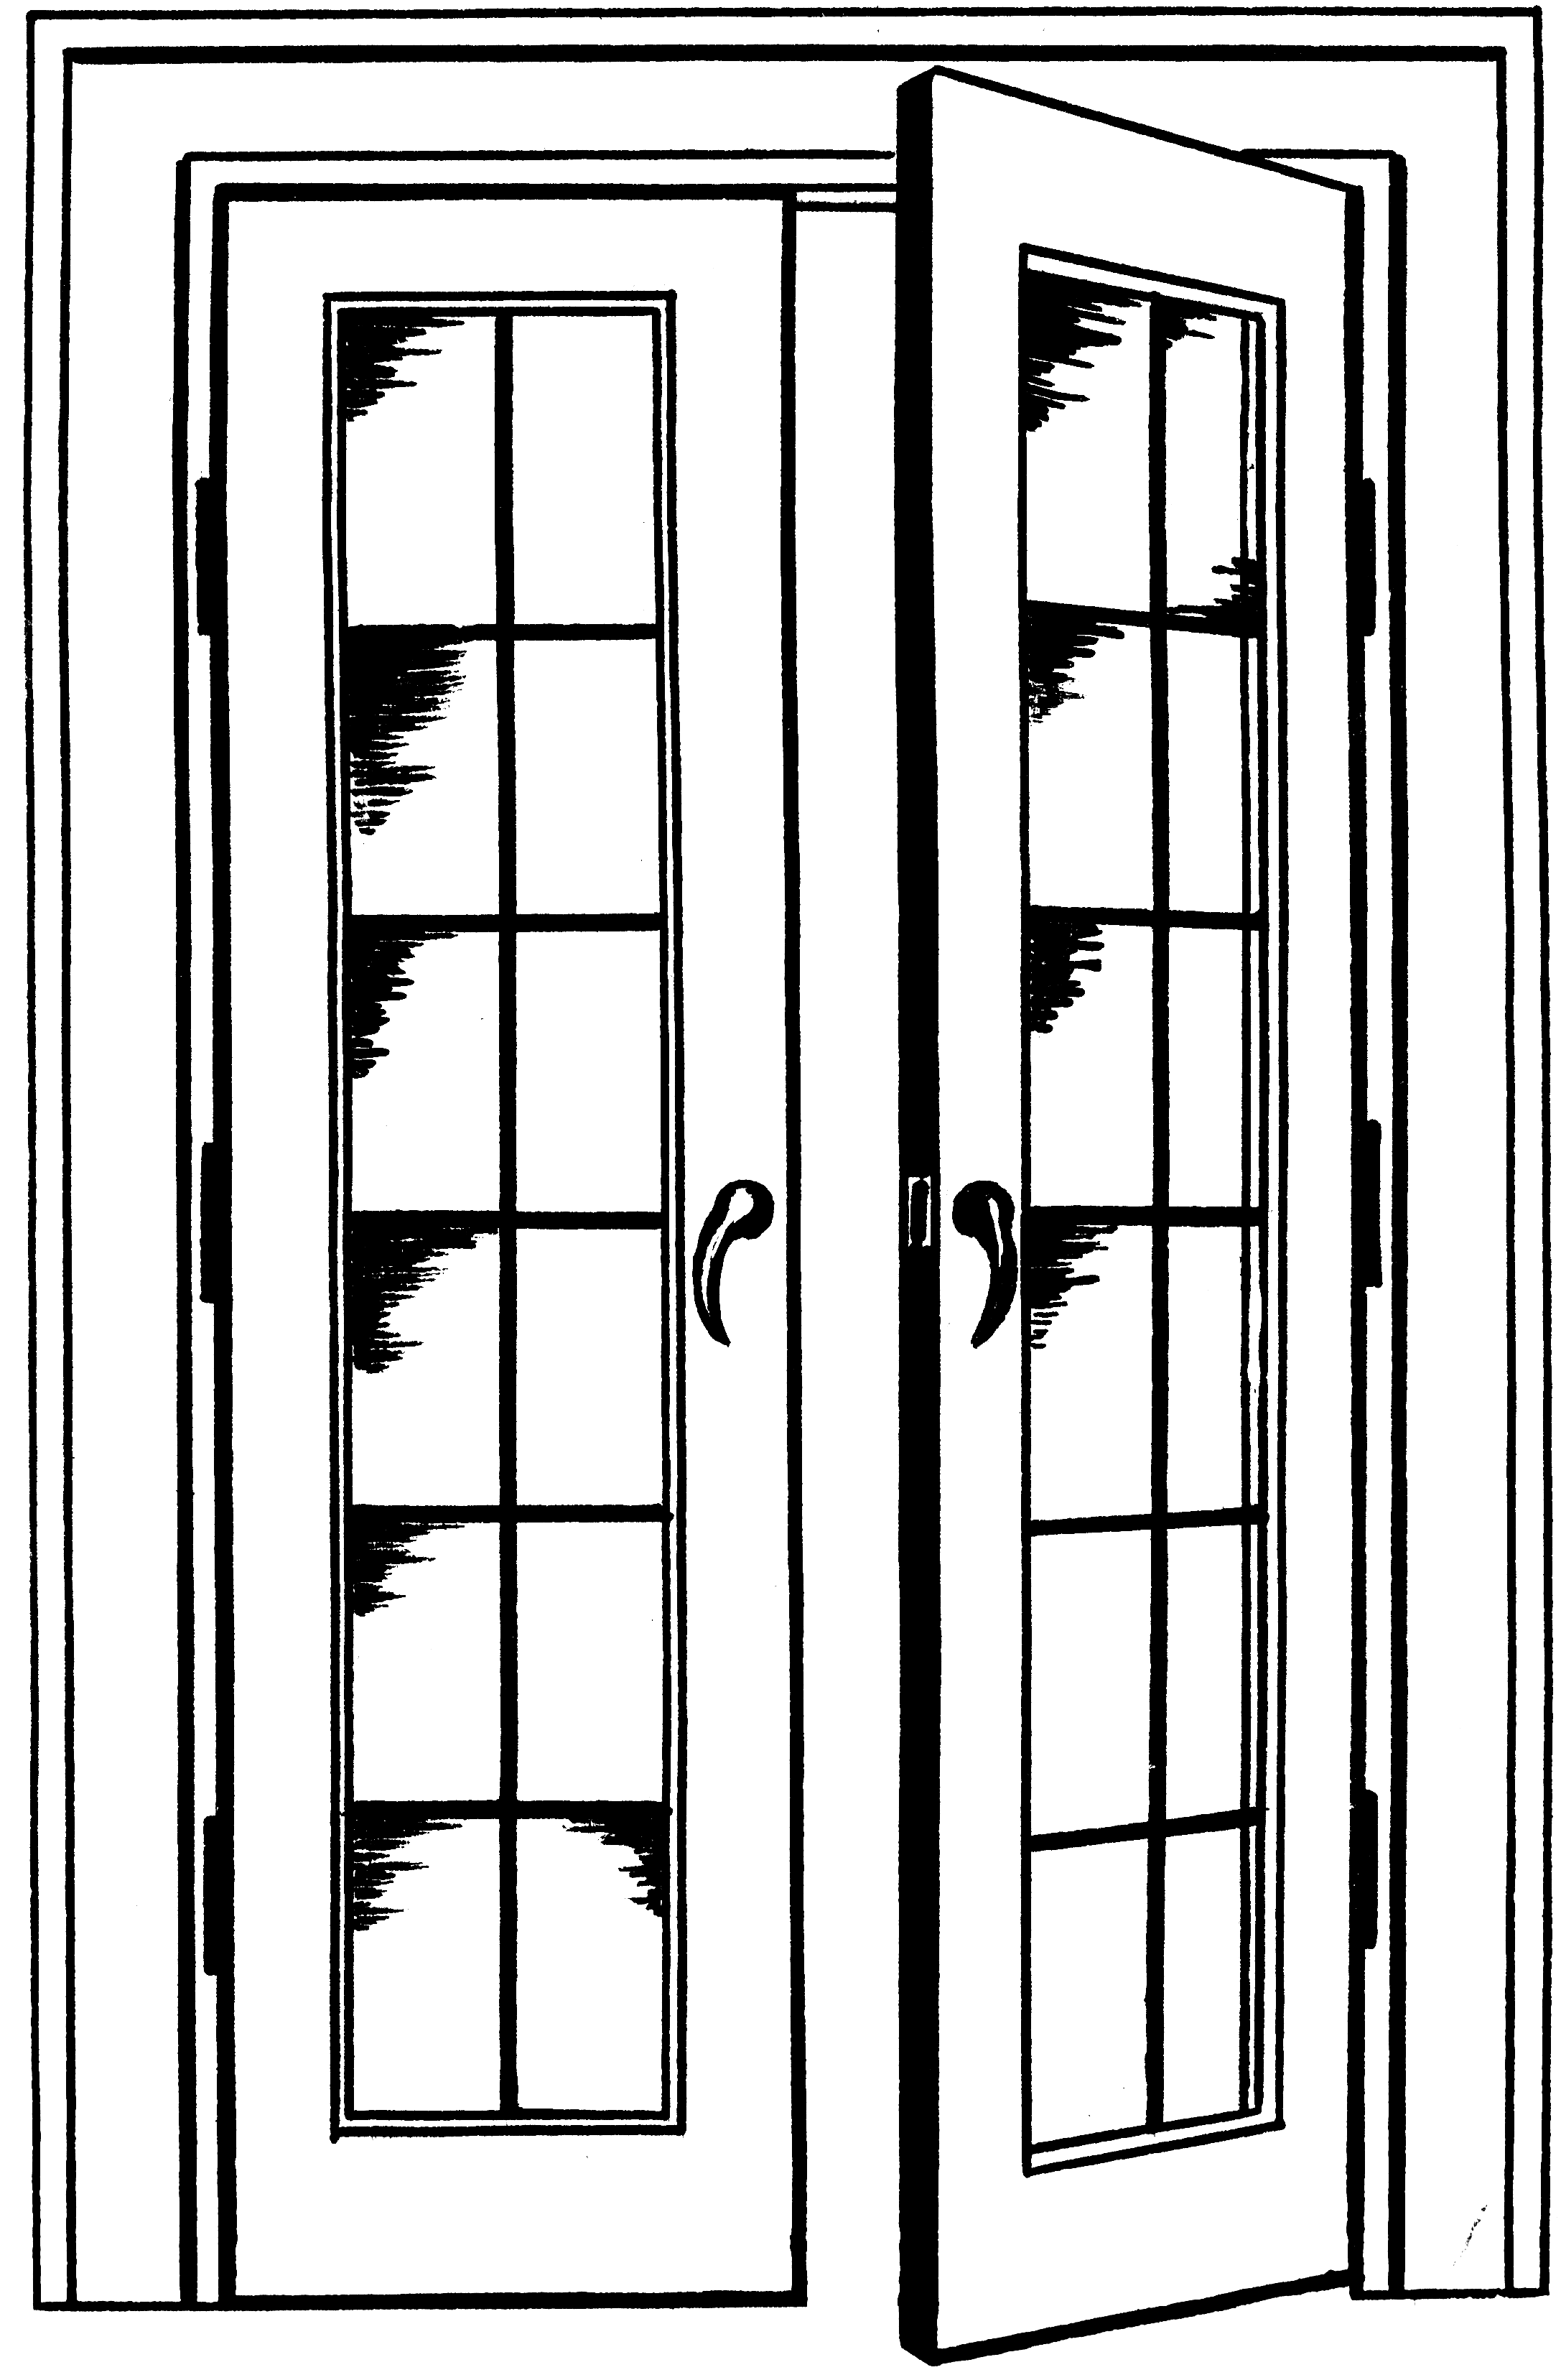 High Quality Images For French Doors Wiki Mobile8design3d